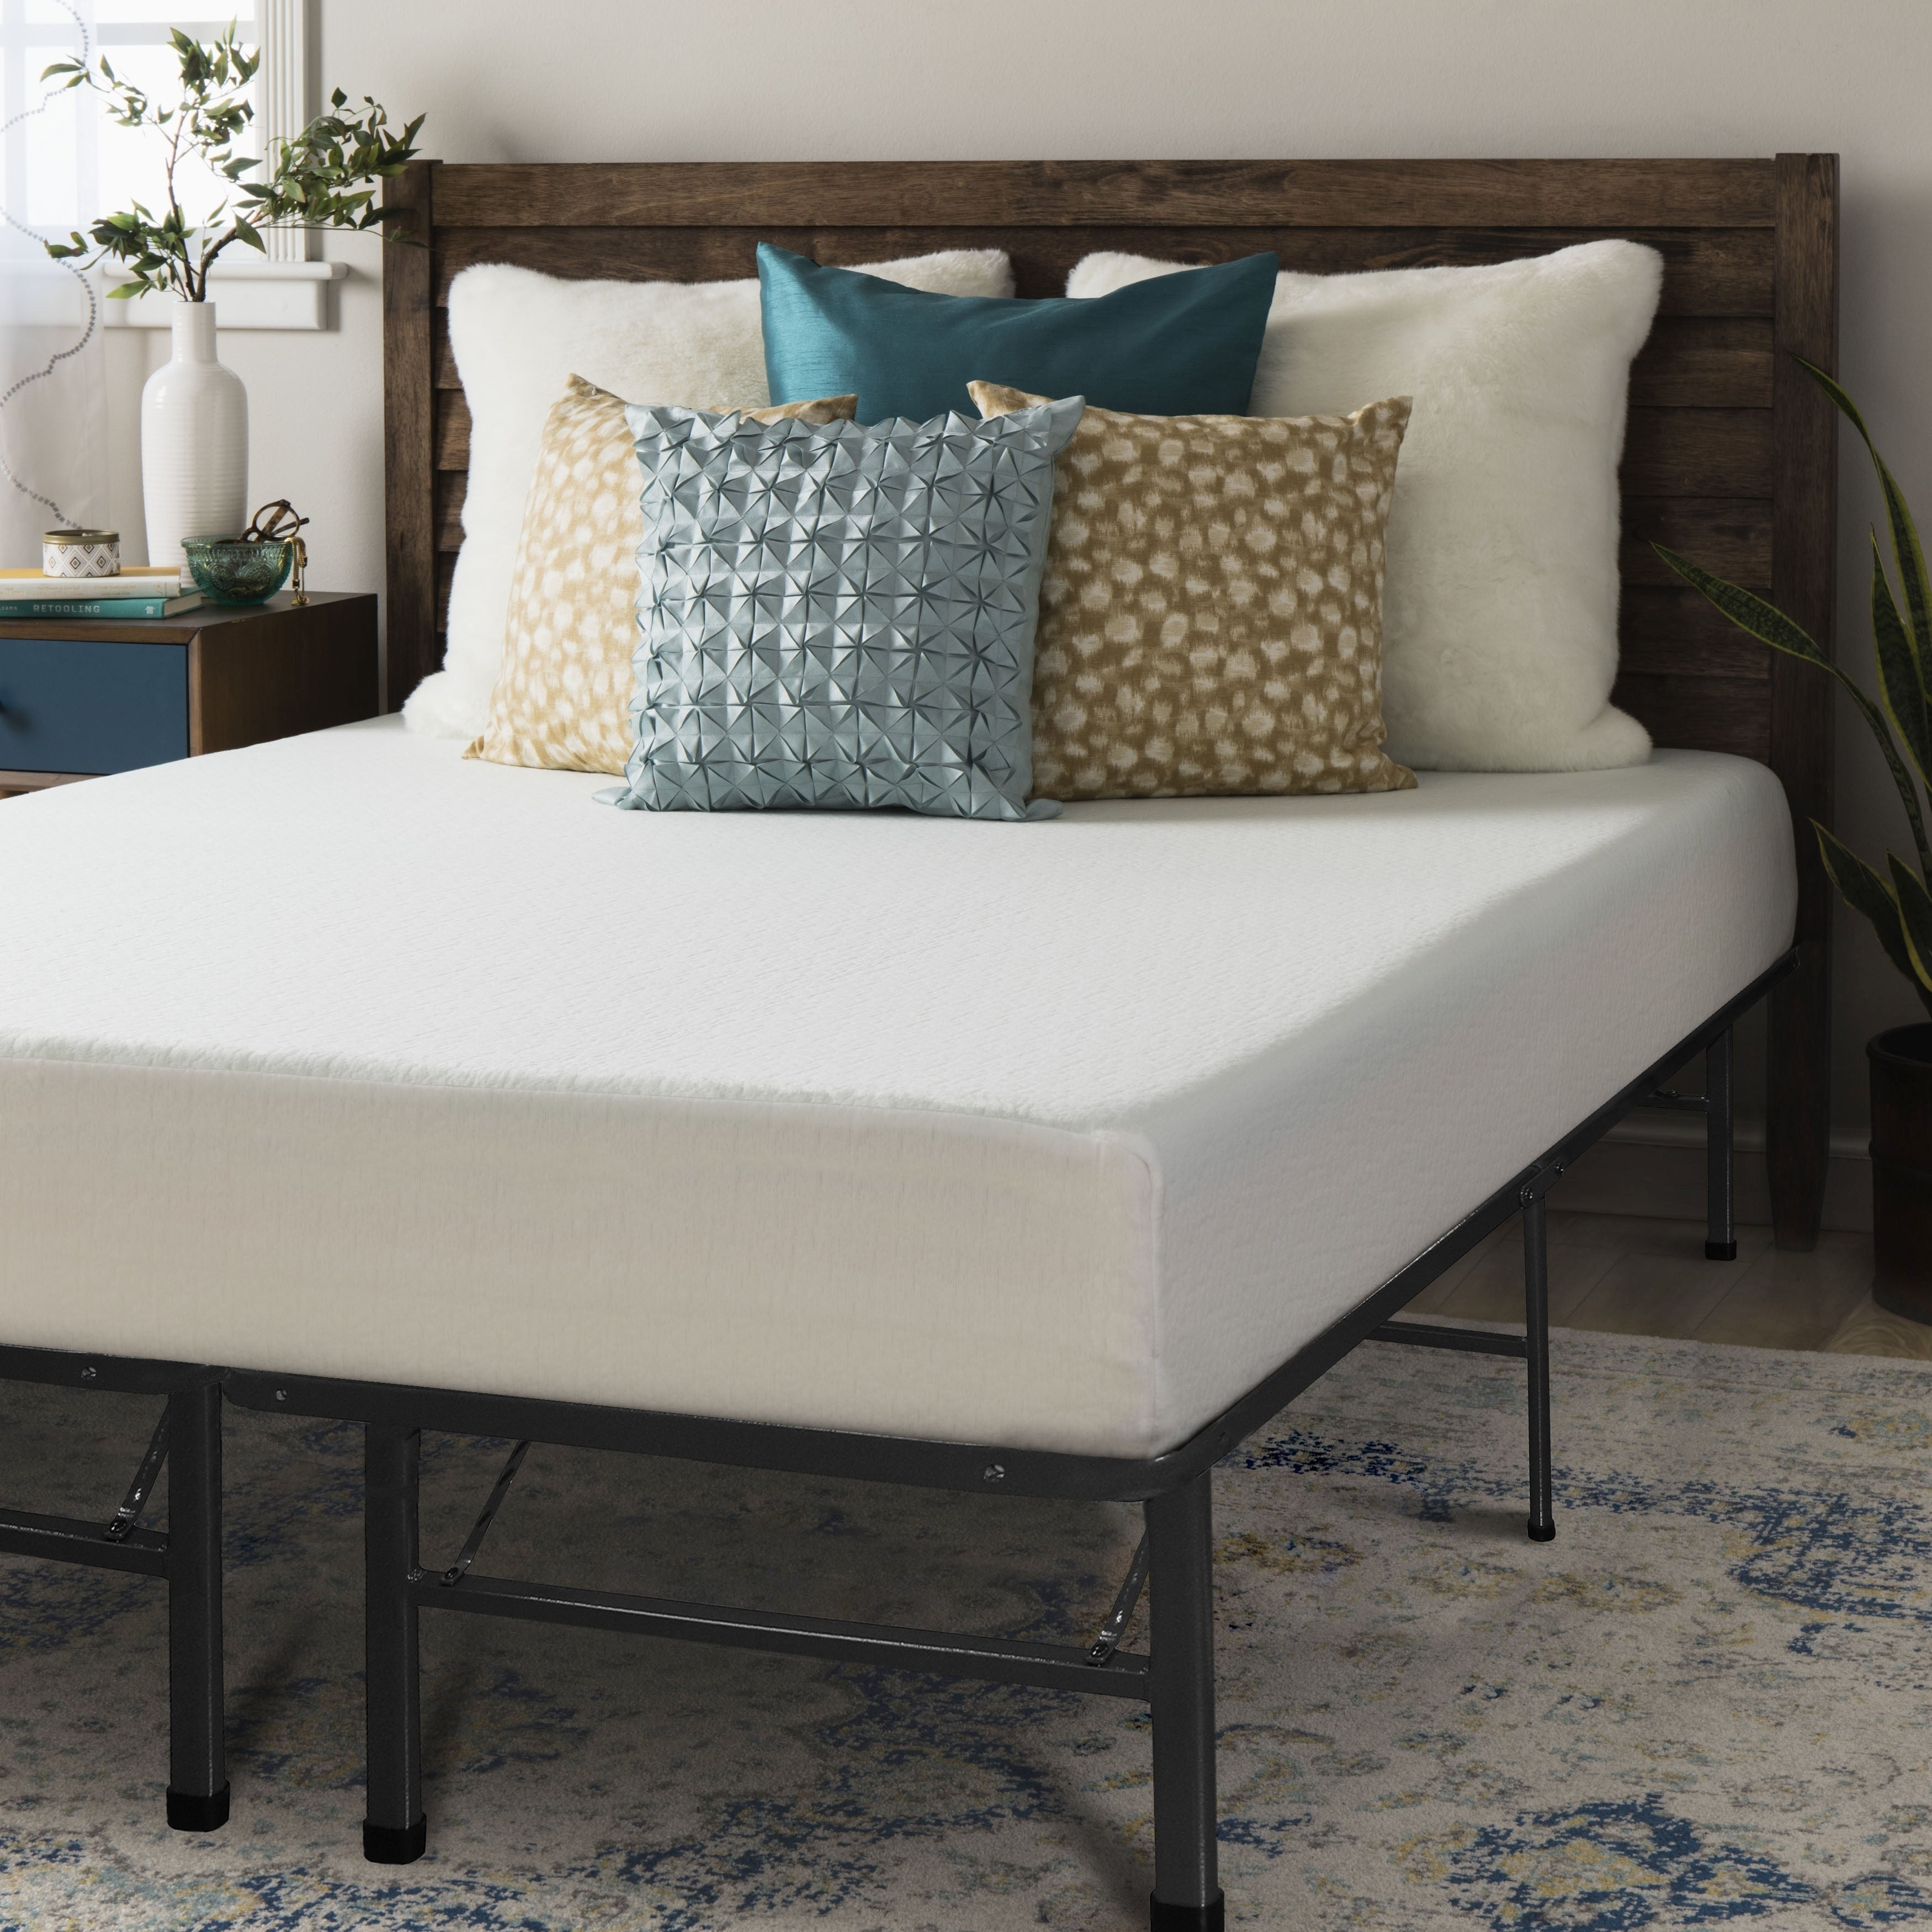 Full size Memory Foam Mattress 8 inch with Bed Frame Set - Crown ...